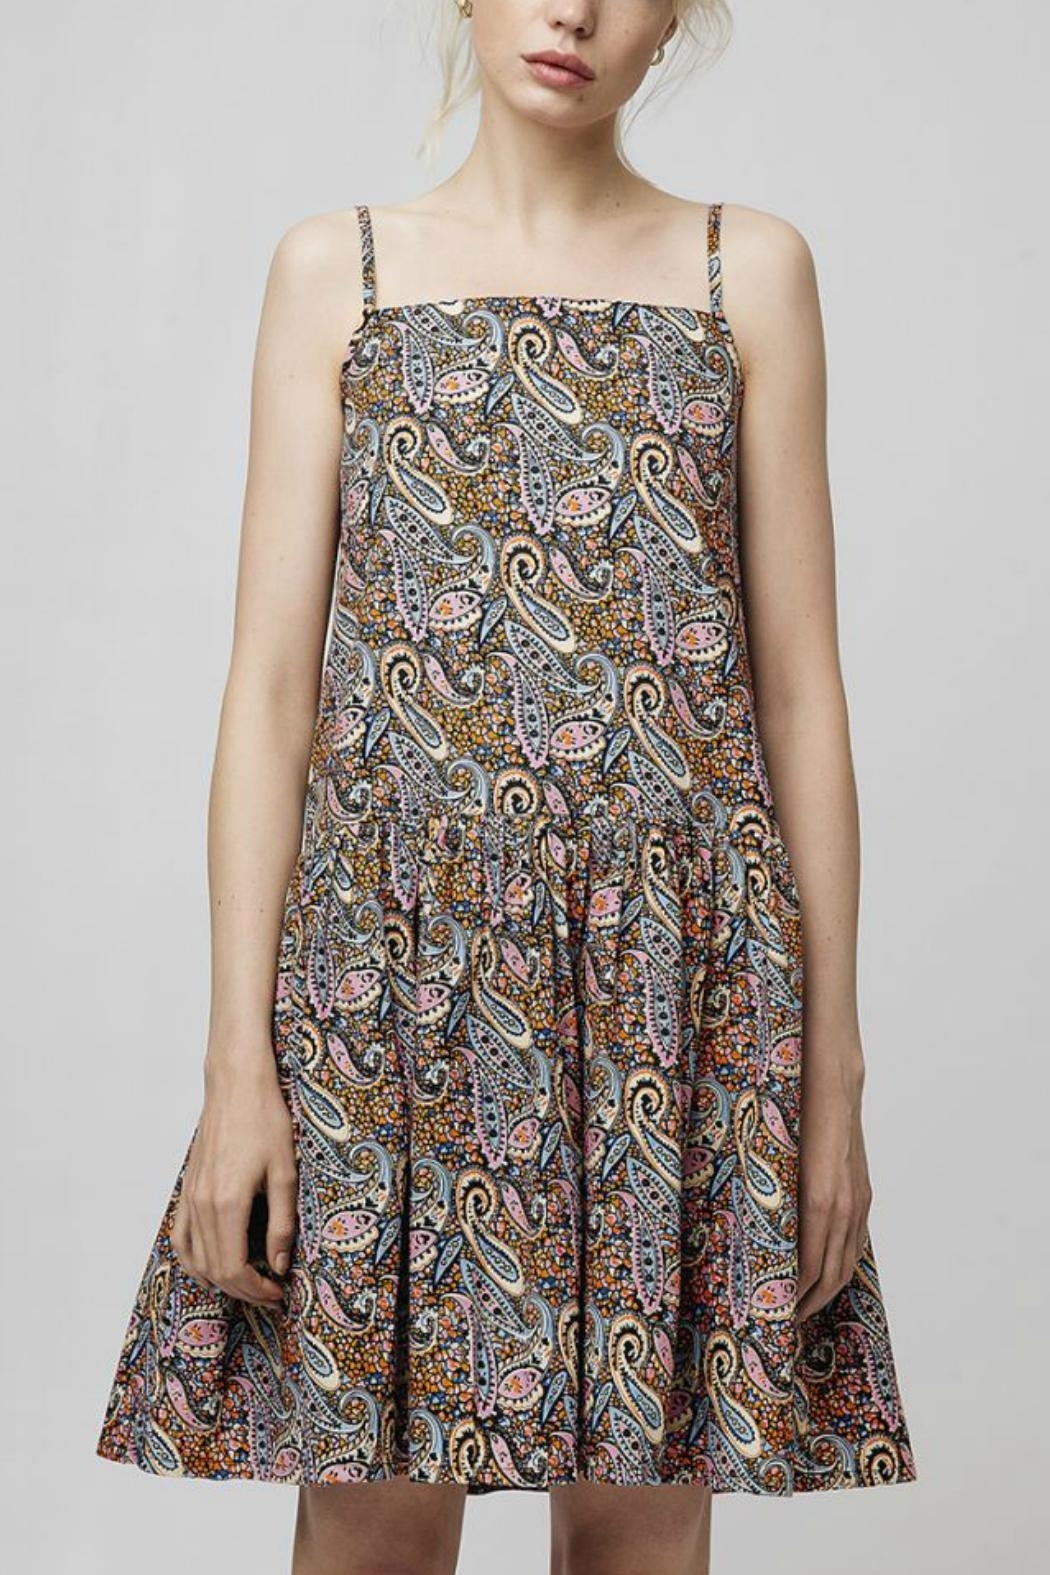 Compania Fantastica Paisley Summer Dress - Main Image